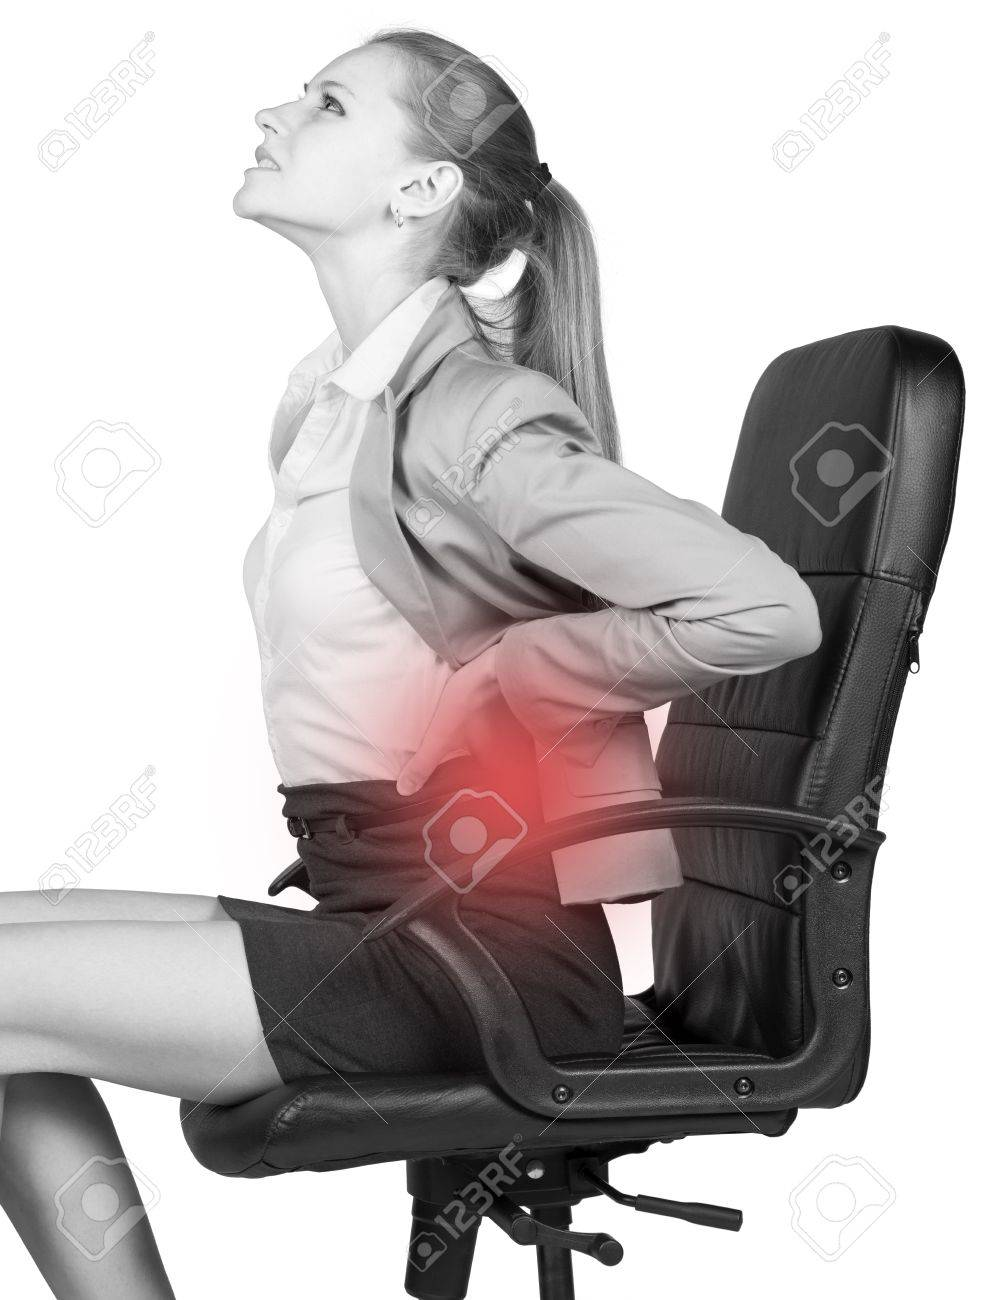 Businesswoman With Lower Back Pain Sitting On Office Chair Stock Photo Picture And Royalty Free Image Image 36660605